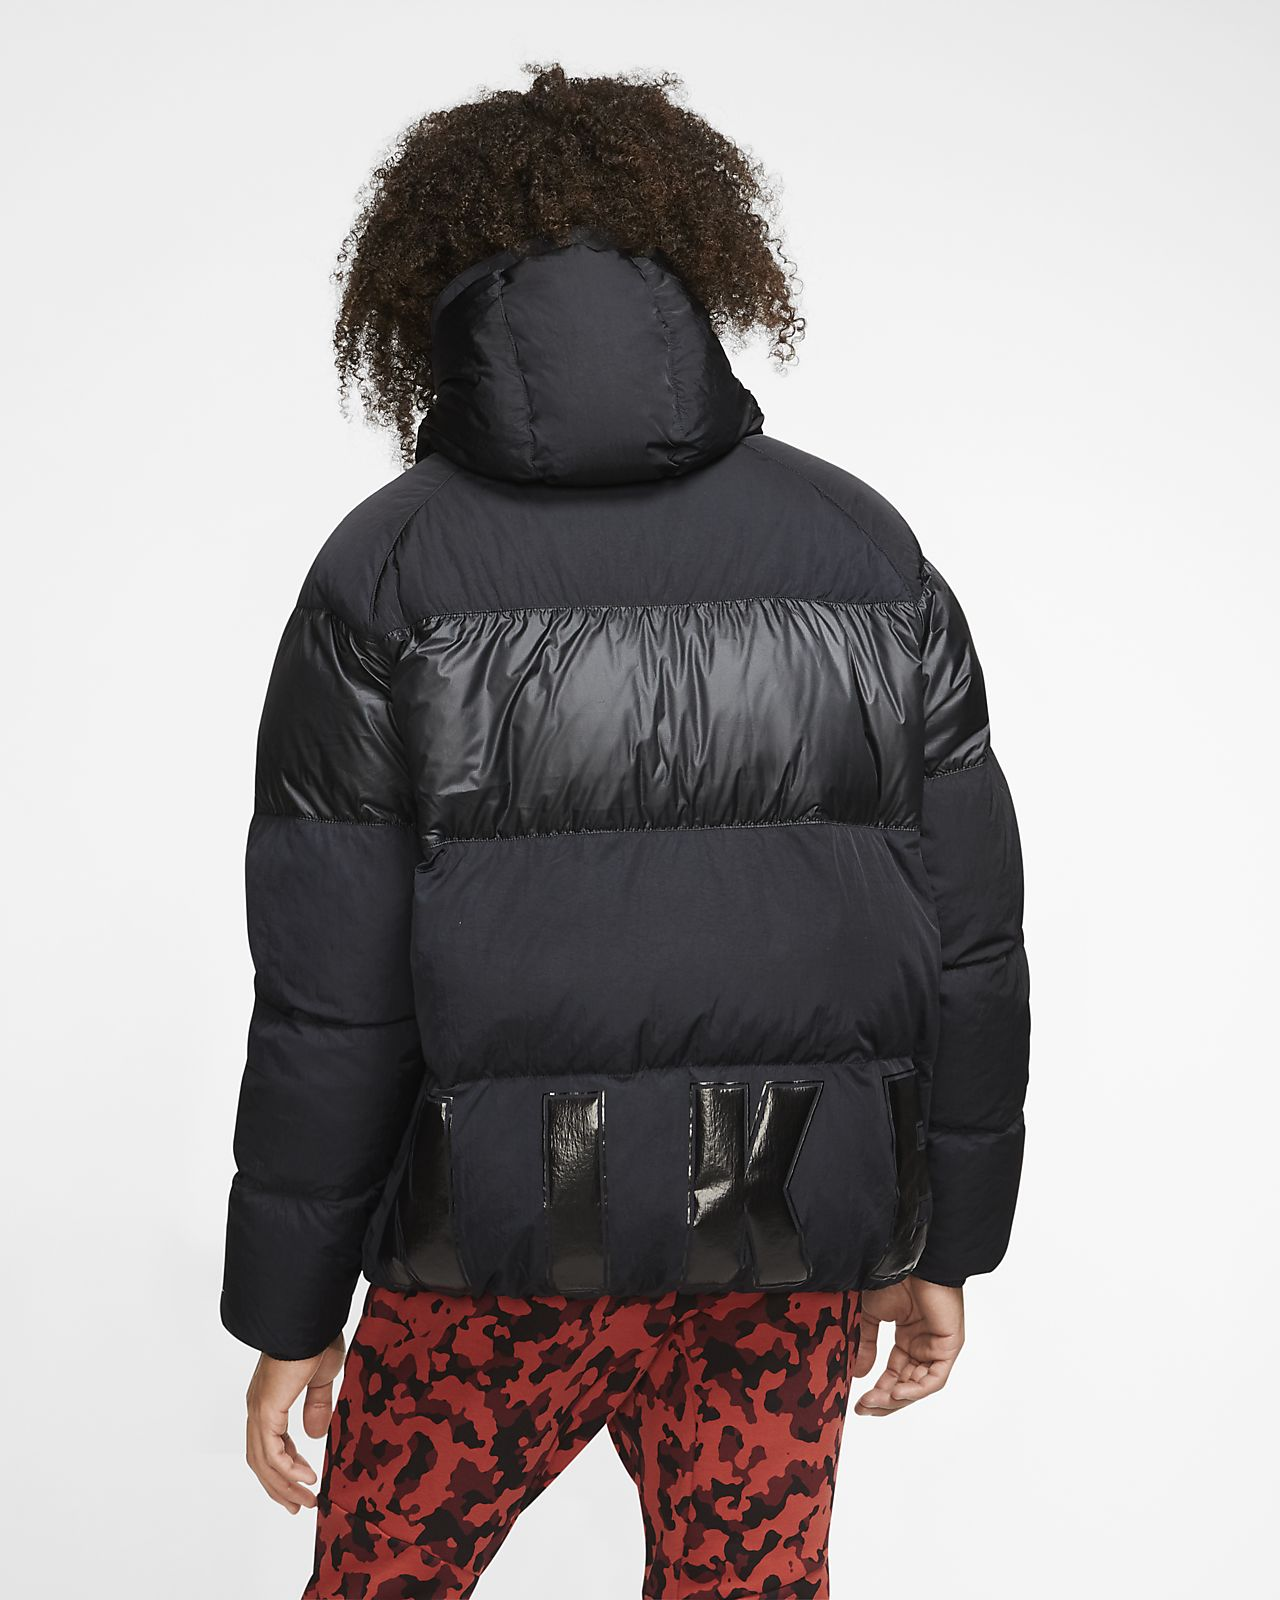 Nike Down Fill All Over Print Jacka | Size?